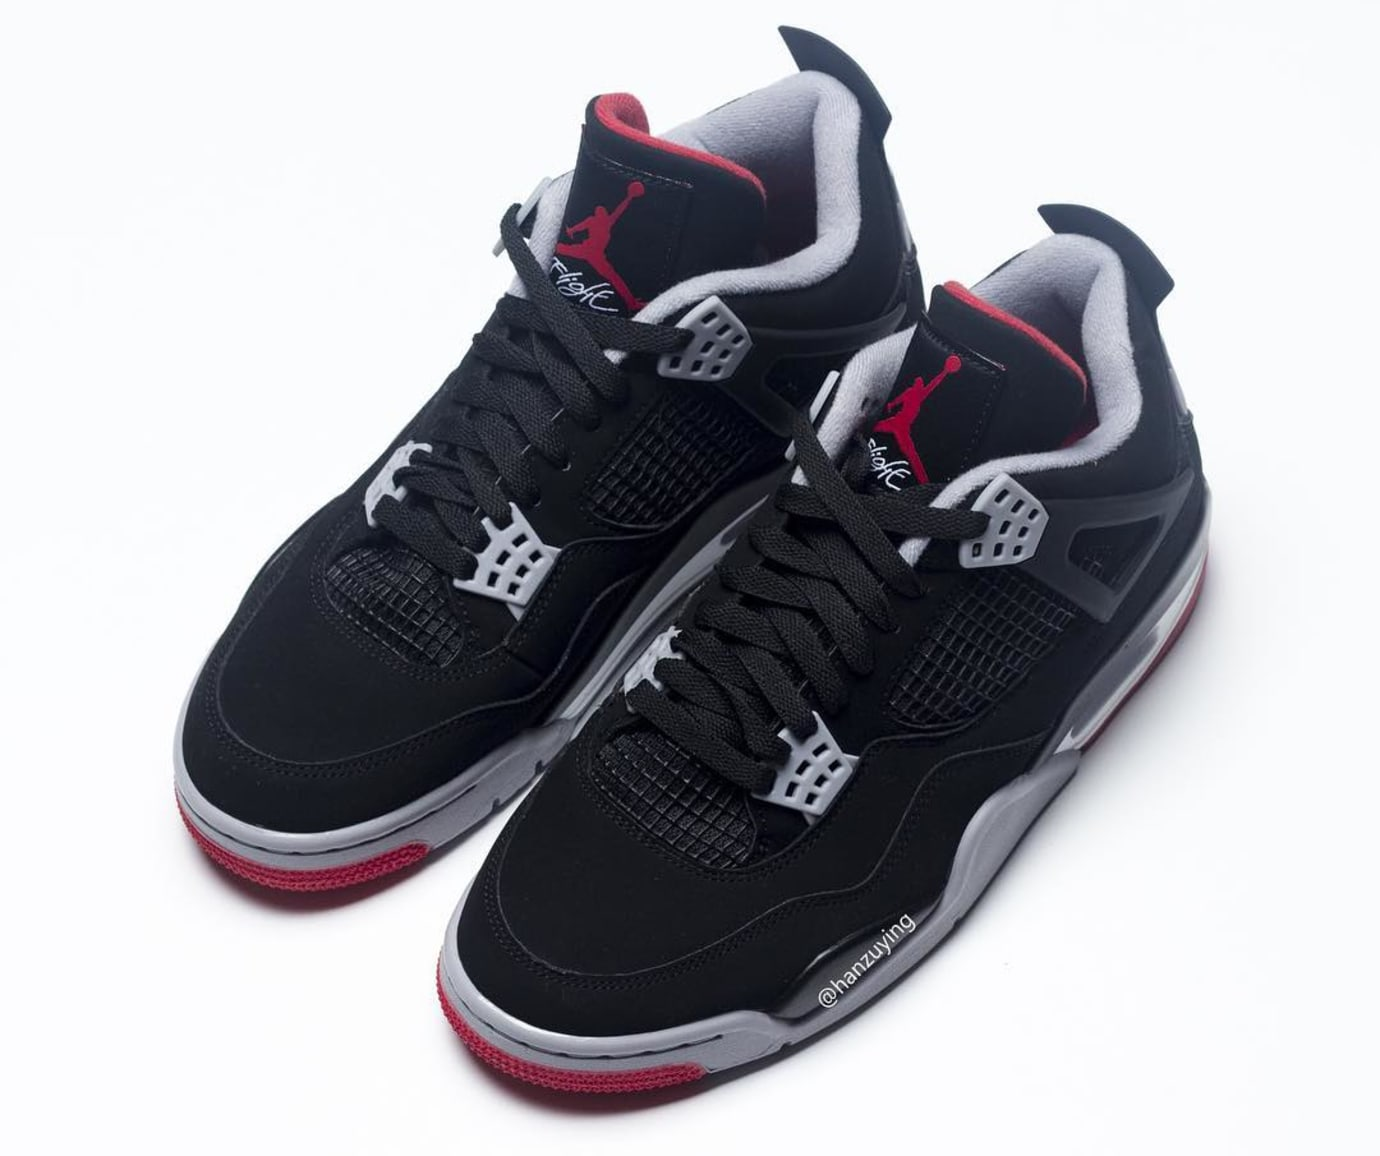 Air Jordan 4 Retro 'Bred' 2019 308497-060 Top View